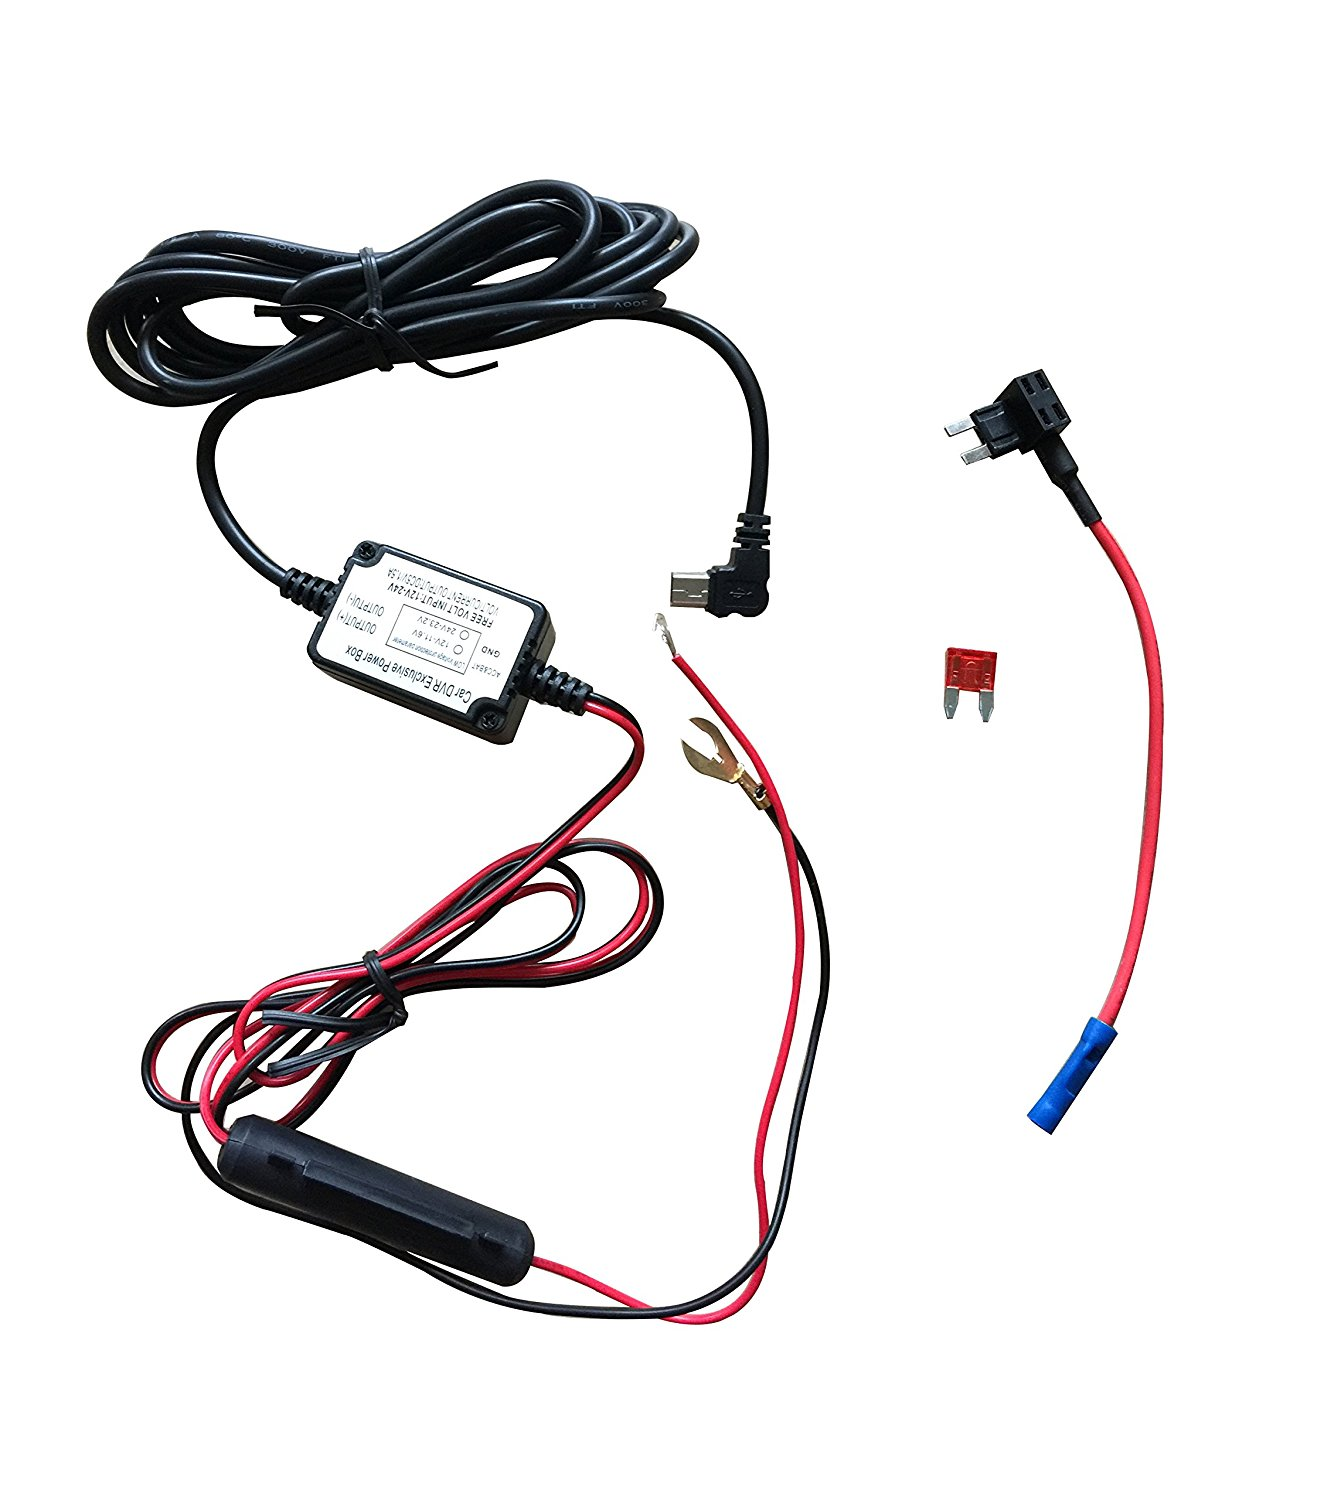 hight resolution of get quotations dash camera hard wire kit mini usb dash cam 10 foot hardwire and fuse kit